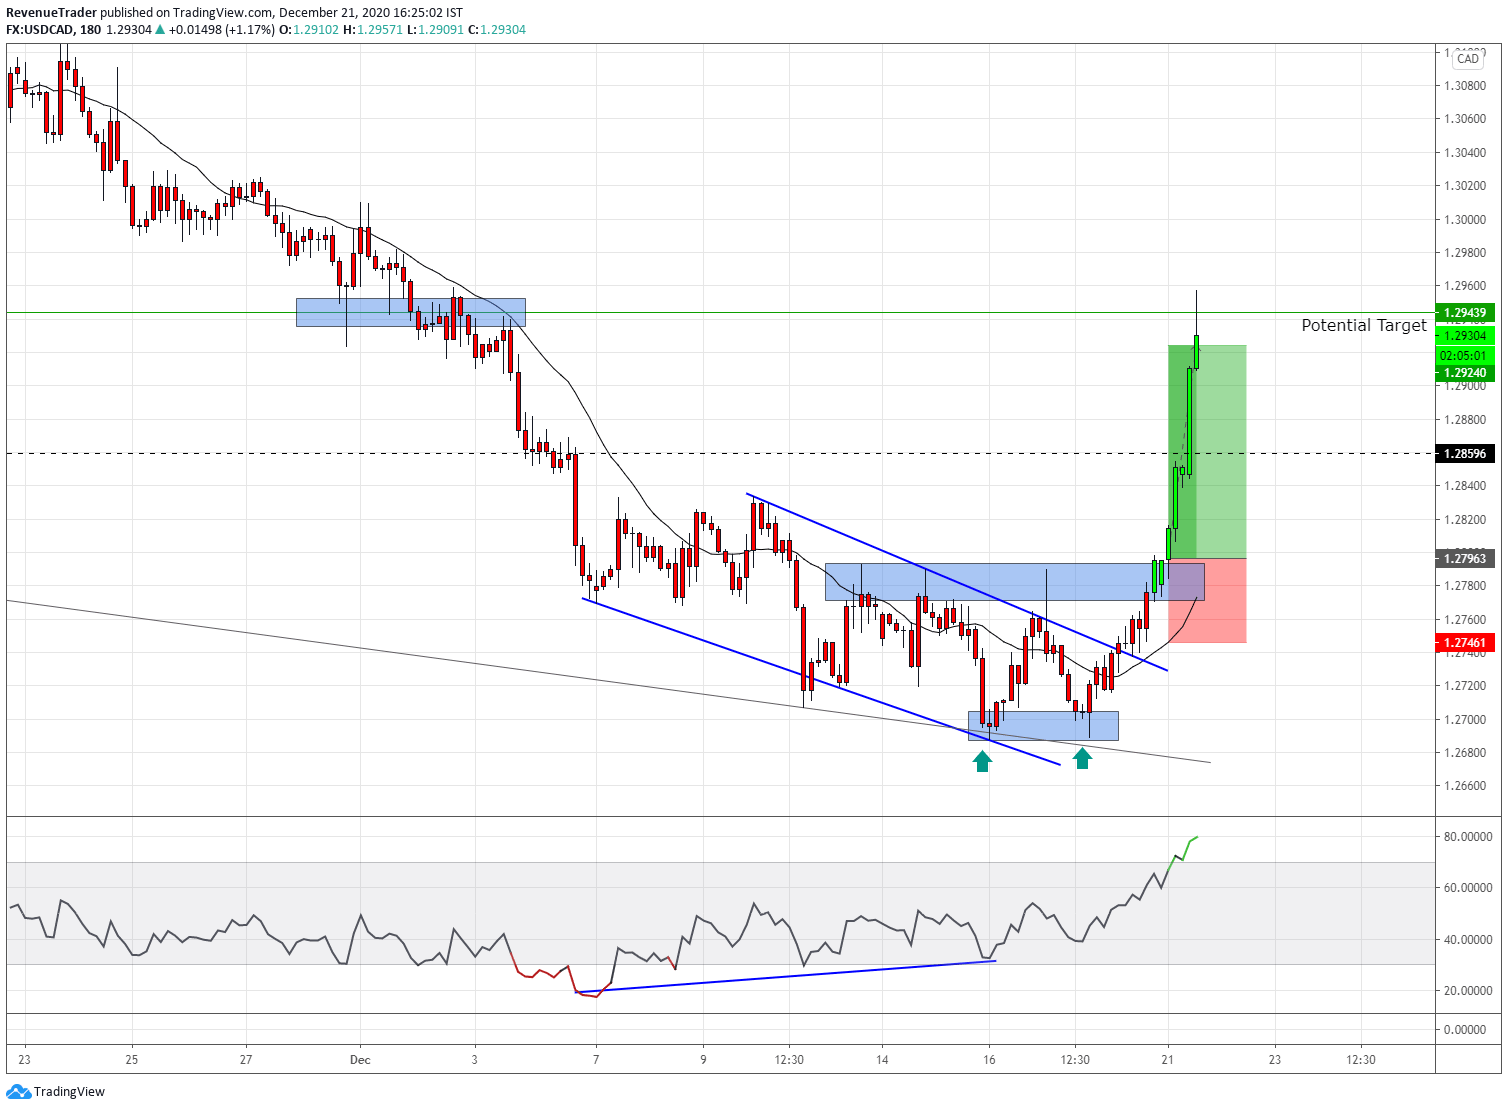 USDCAD 2.4R - descending channel and the double bottom indicate the selling pressure